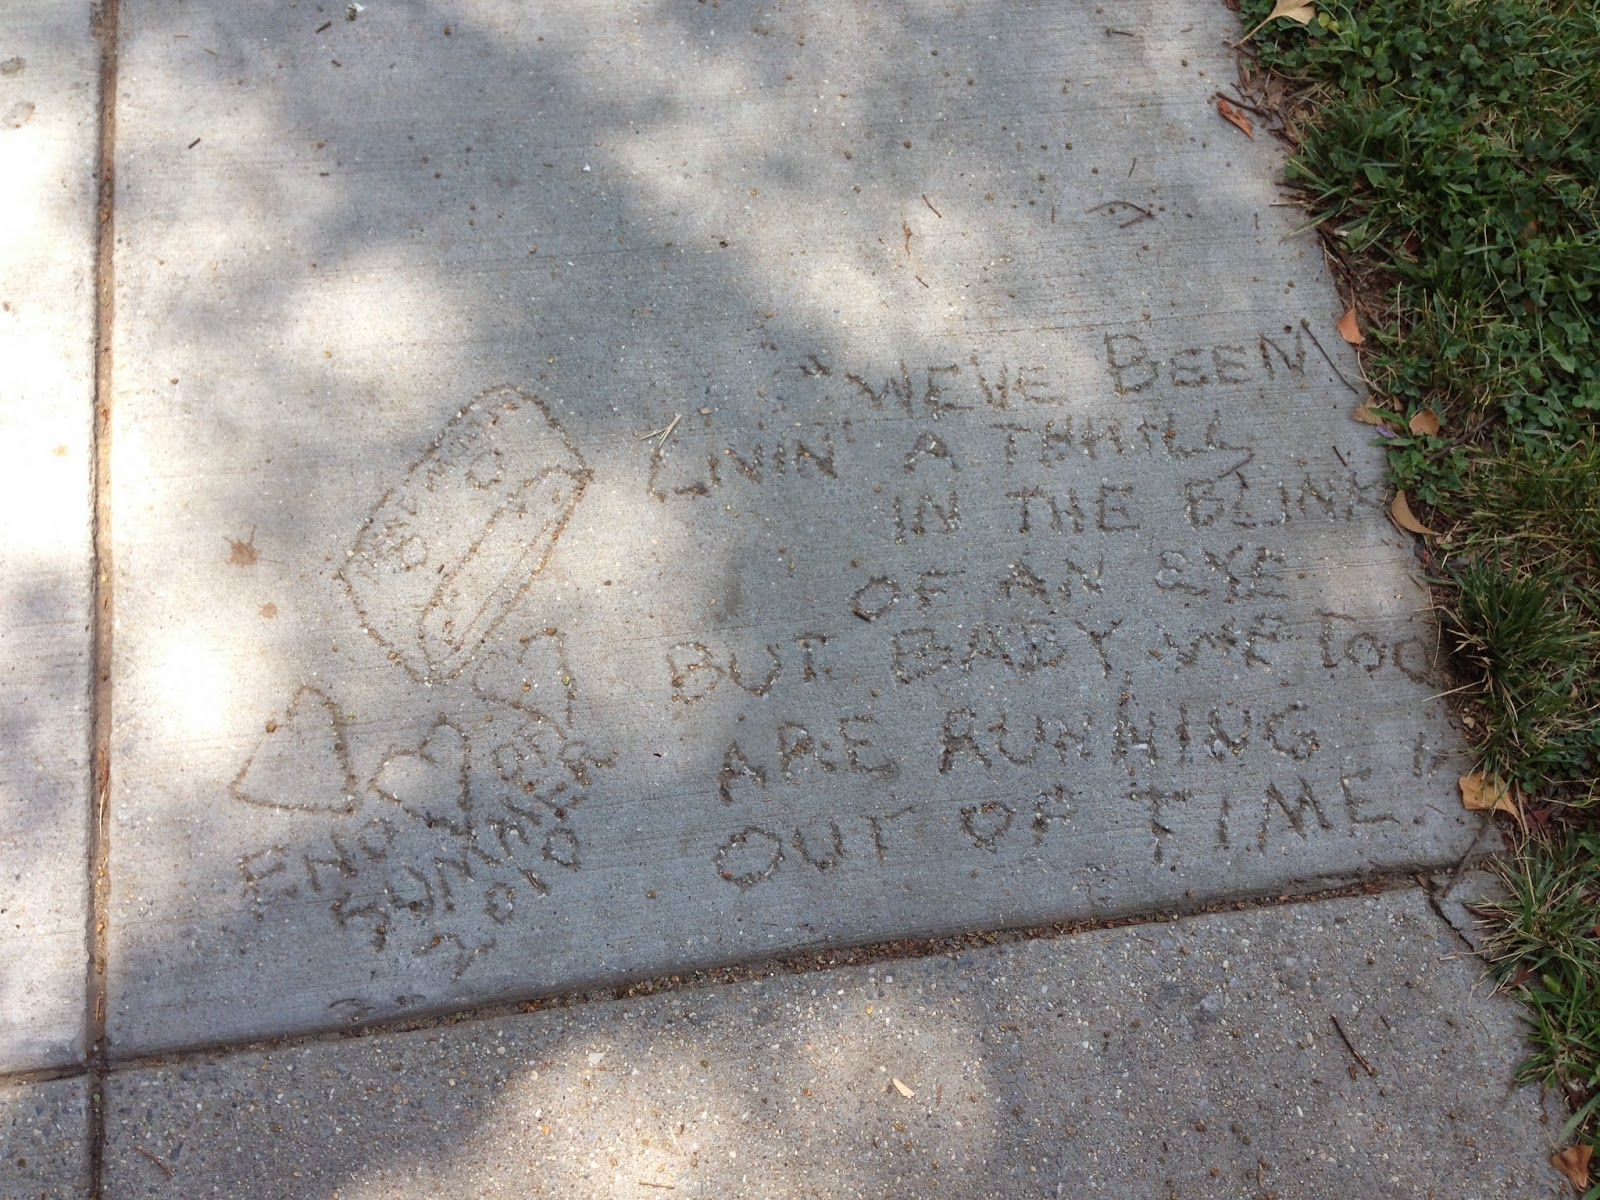 New columbia heights spotted punk lyrics carved into the